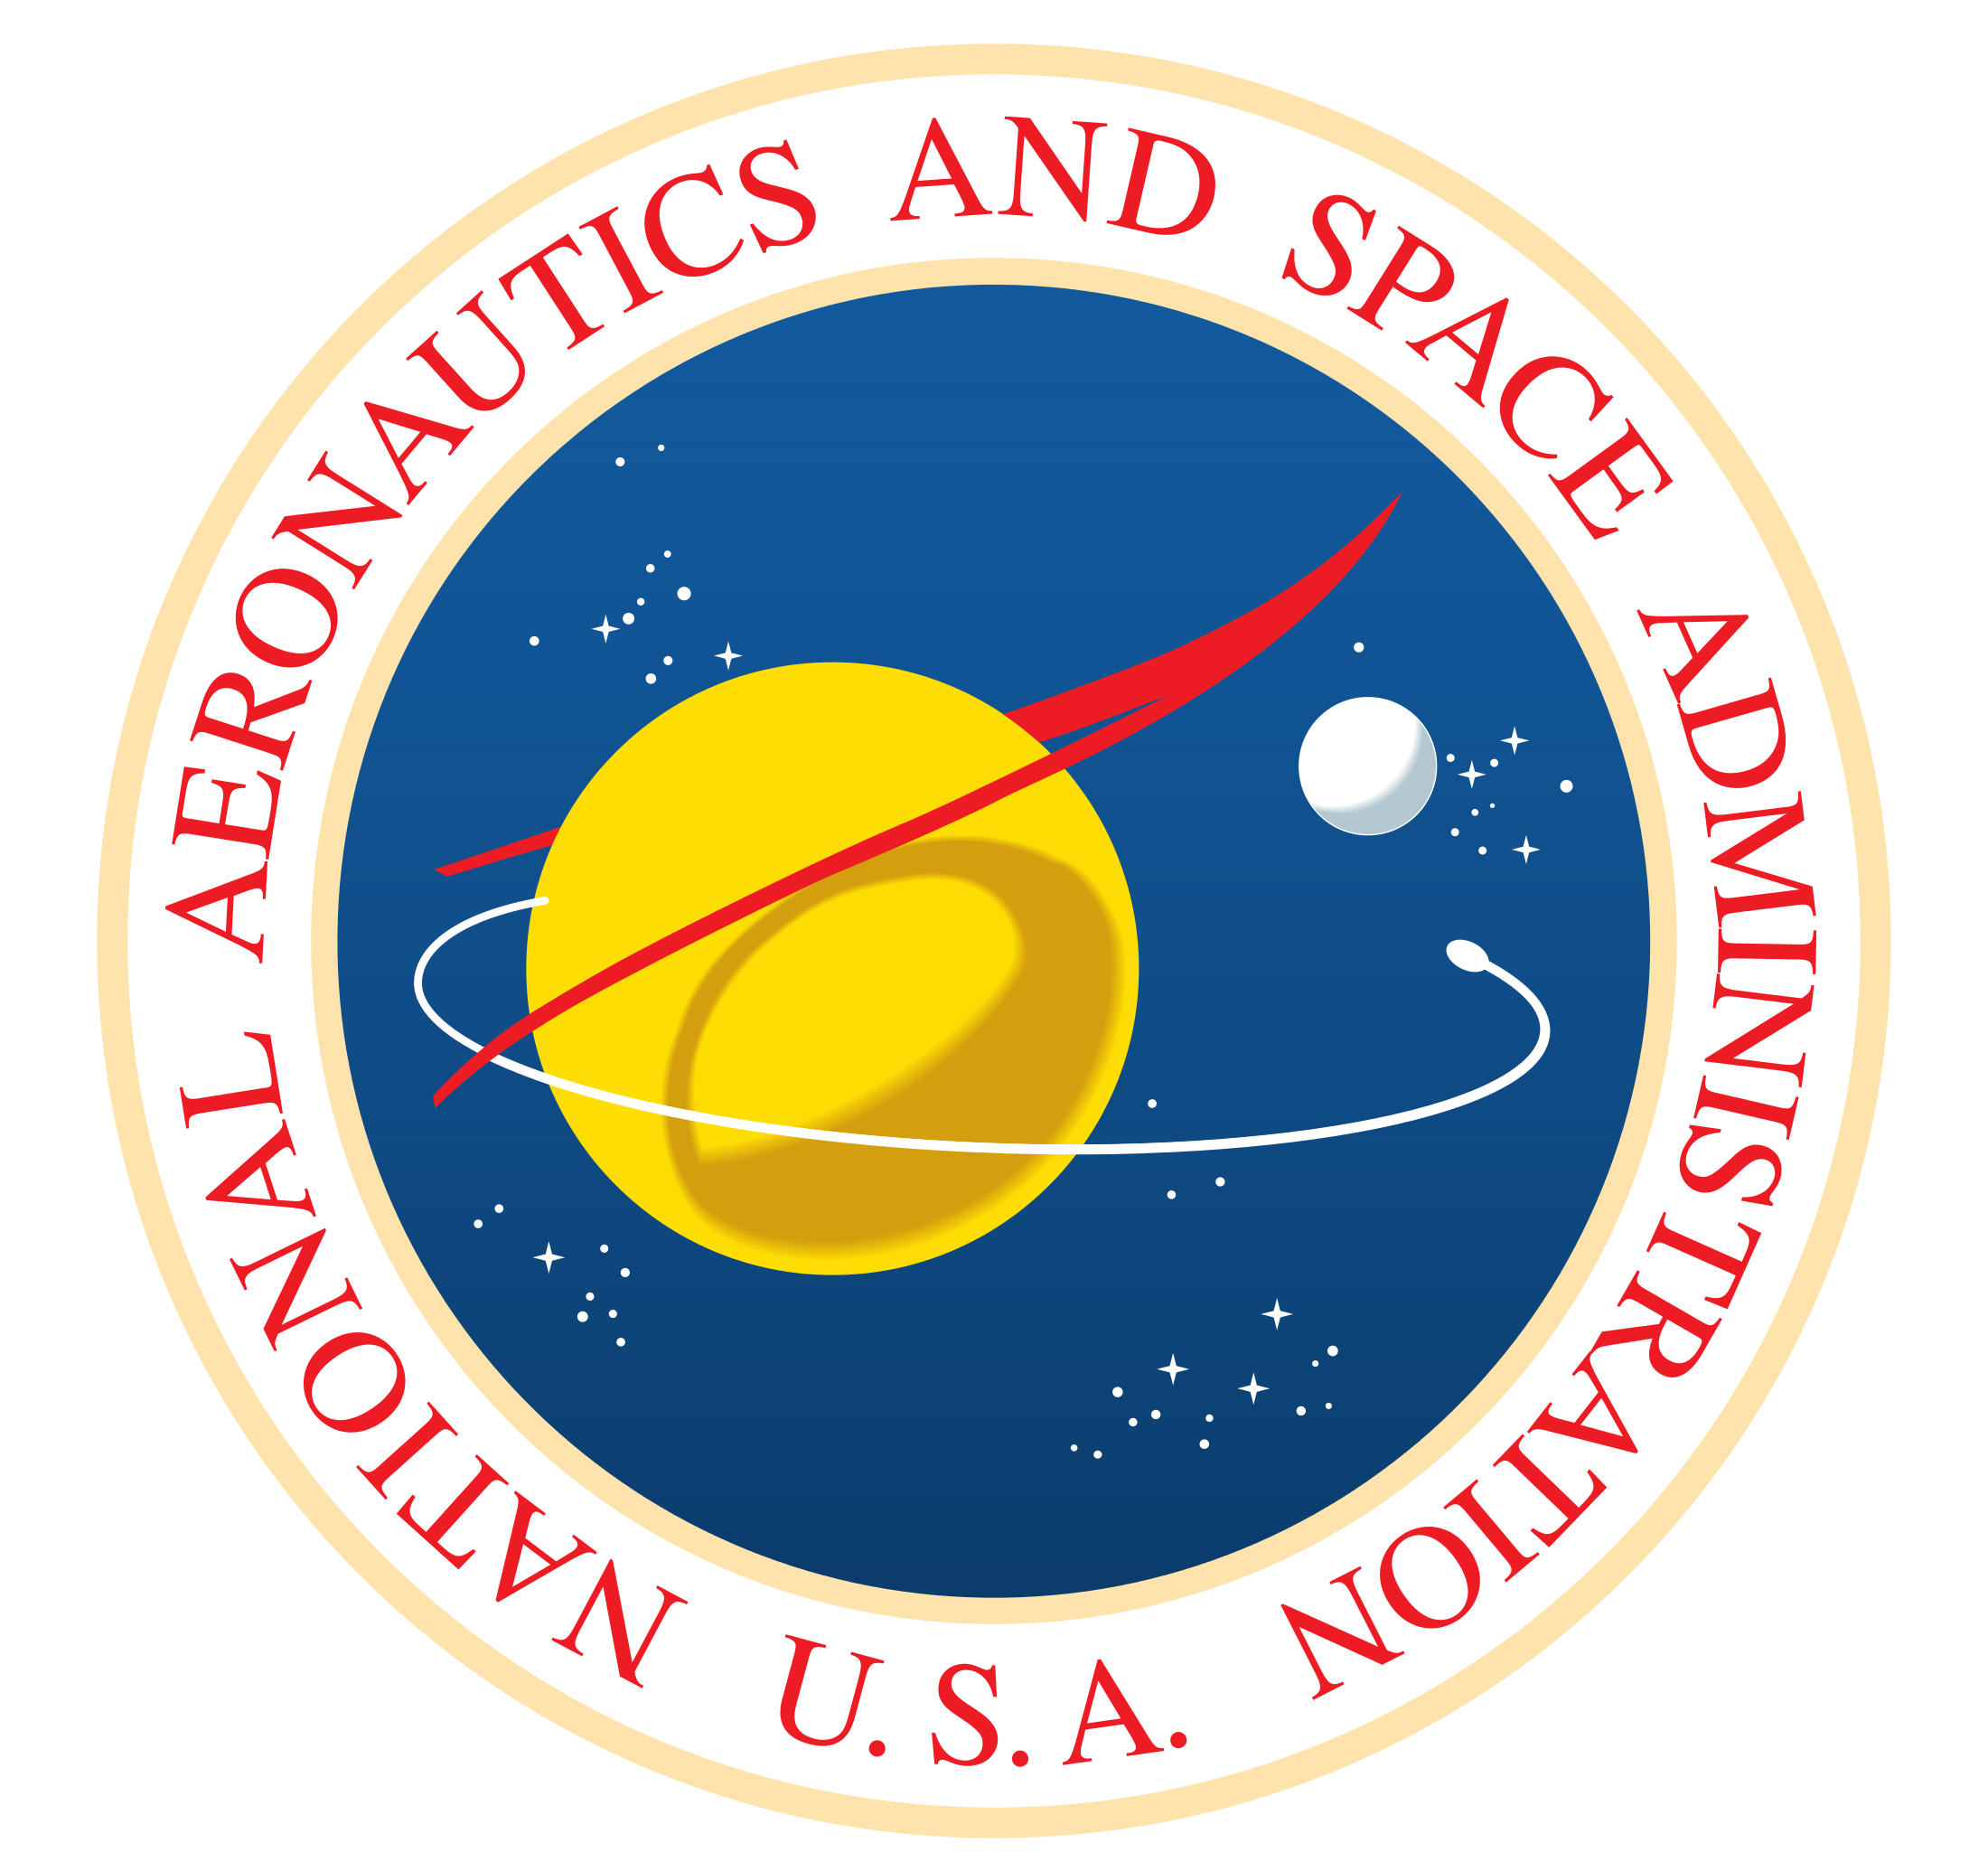 nasa emblem and cadets logos - photo #20